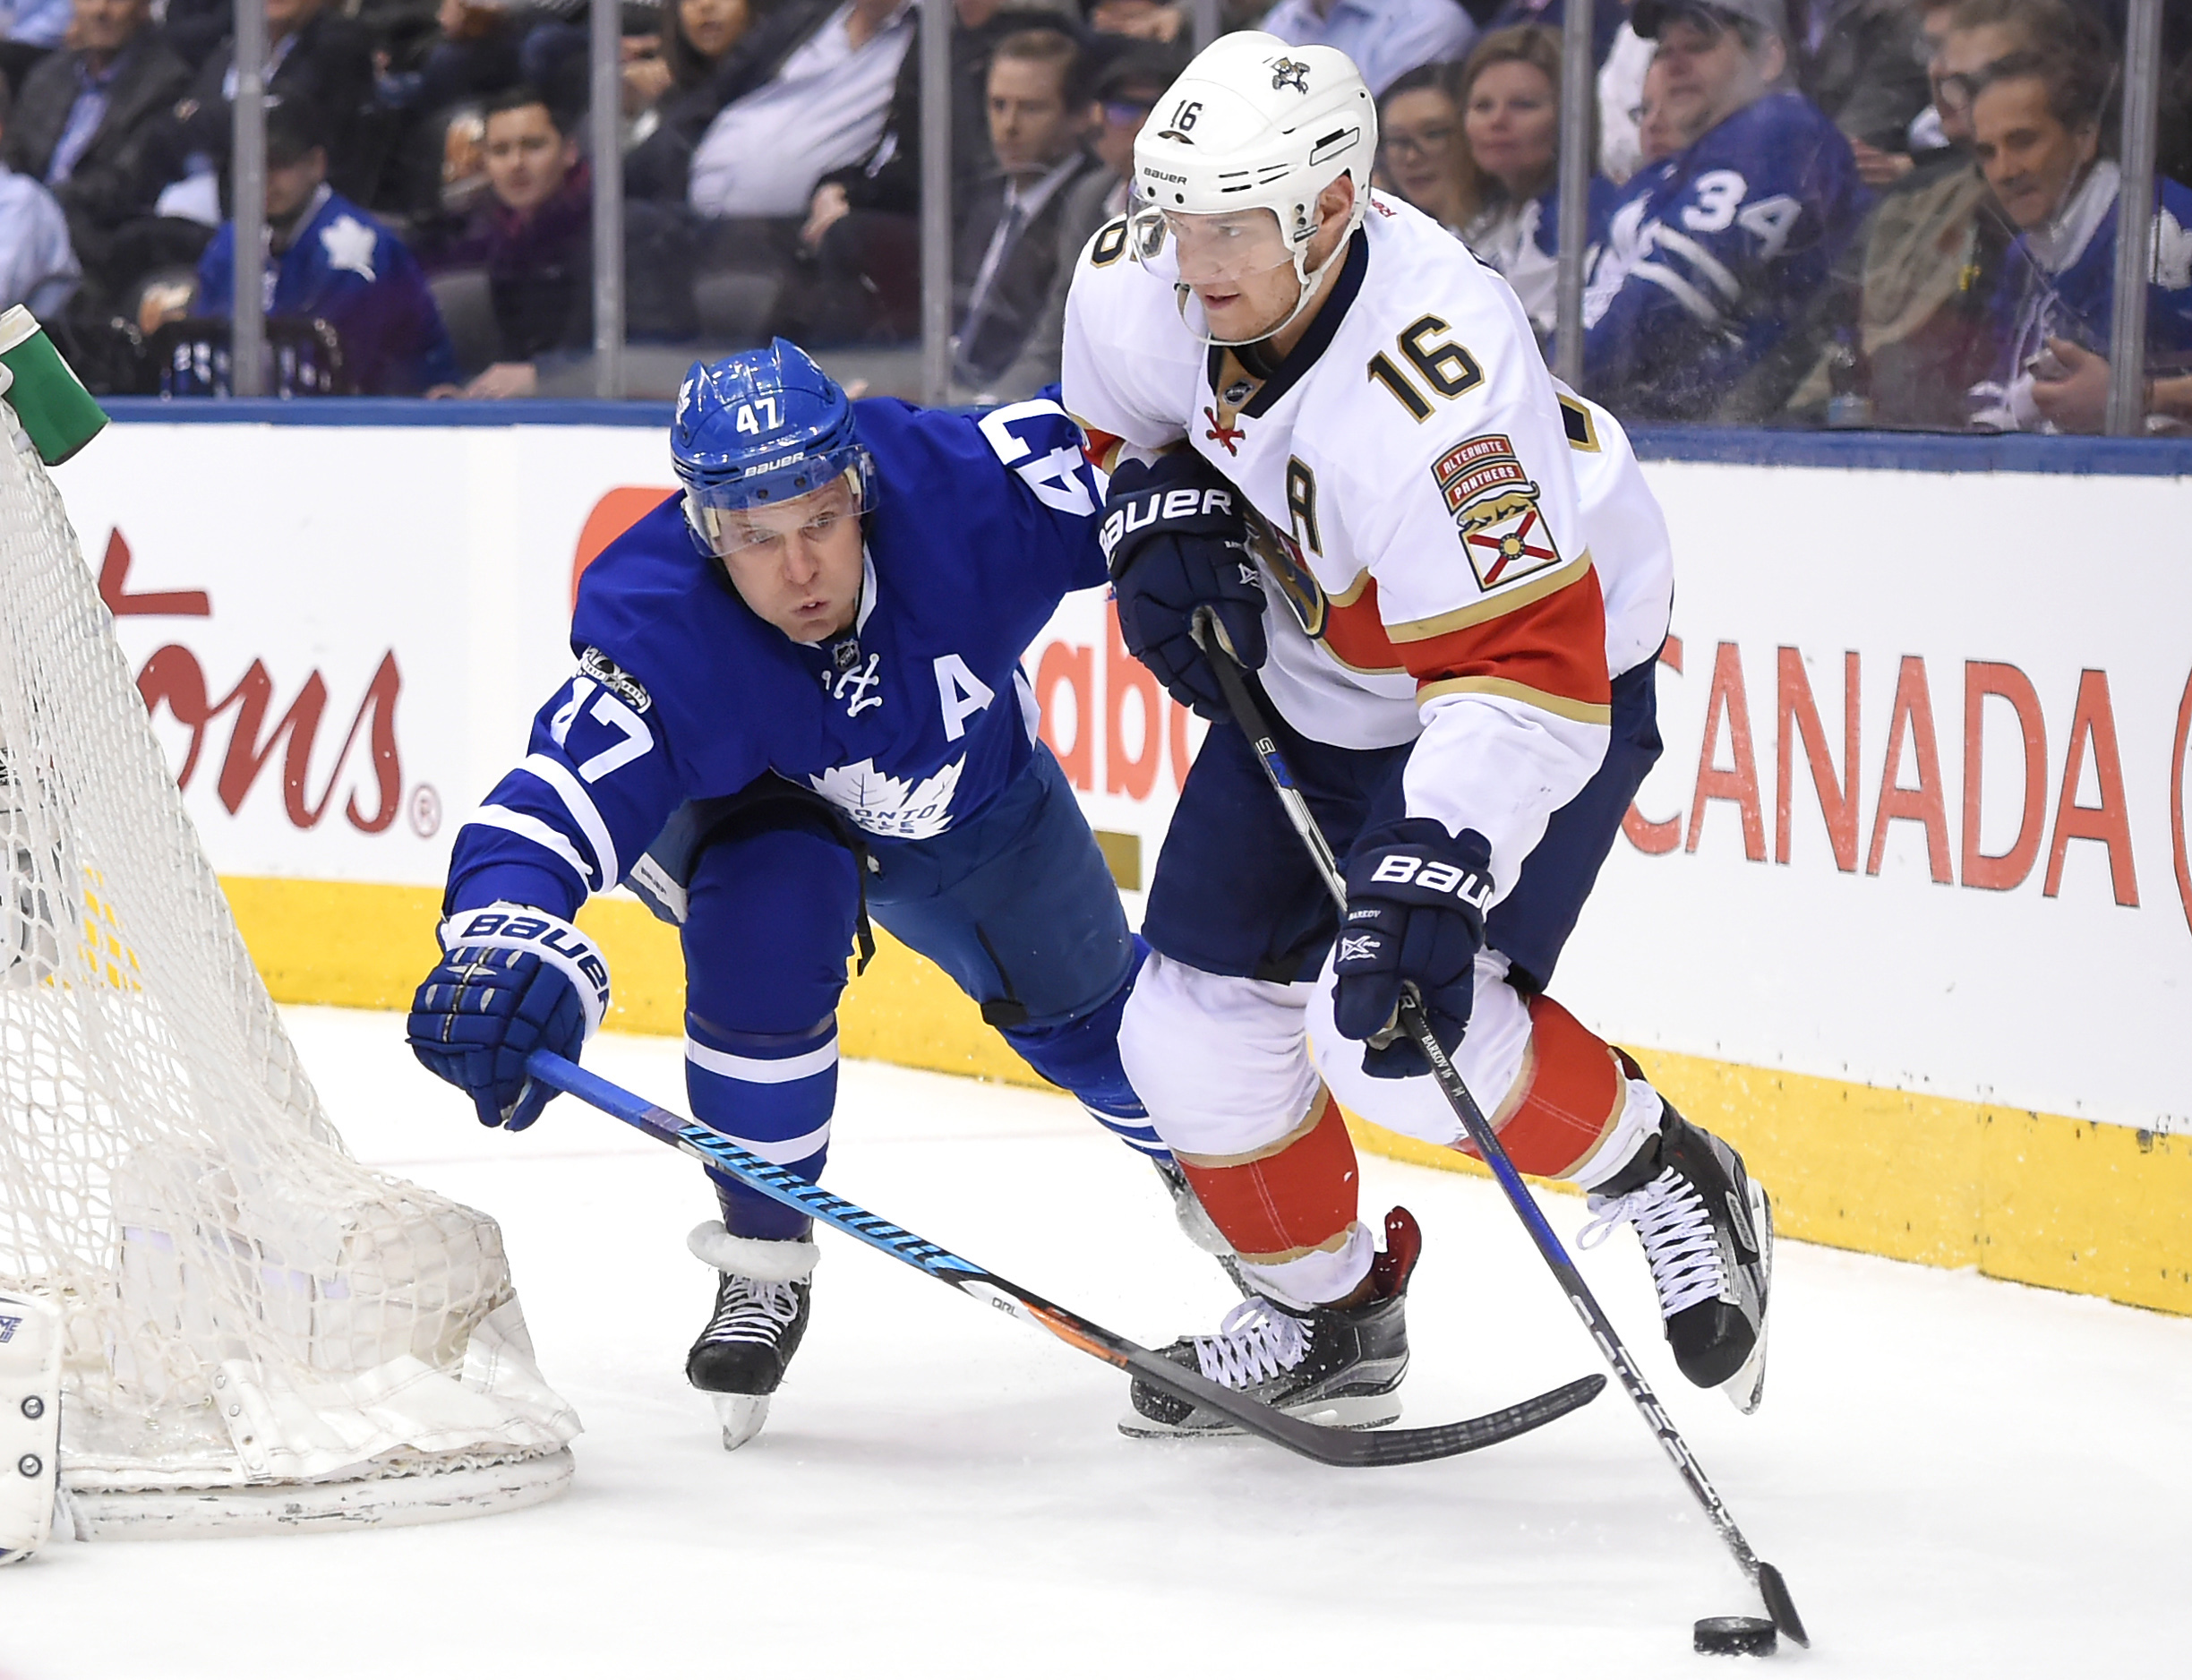 9977997-nhl-florida-panthers-at-toronto-maple-leafs